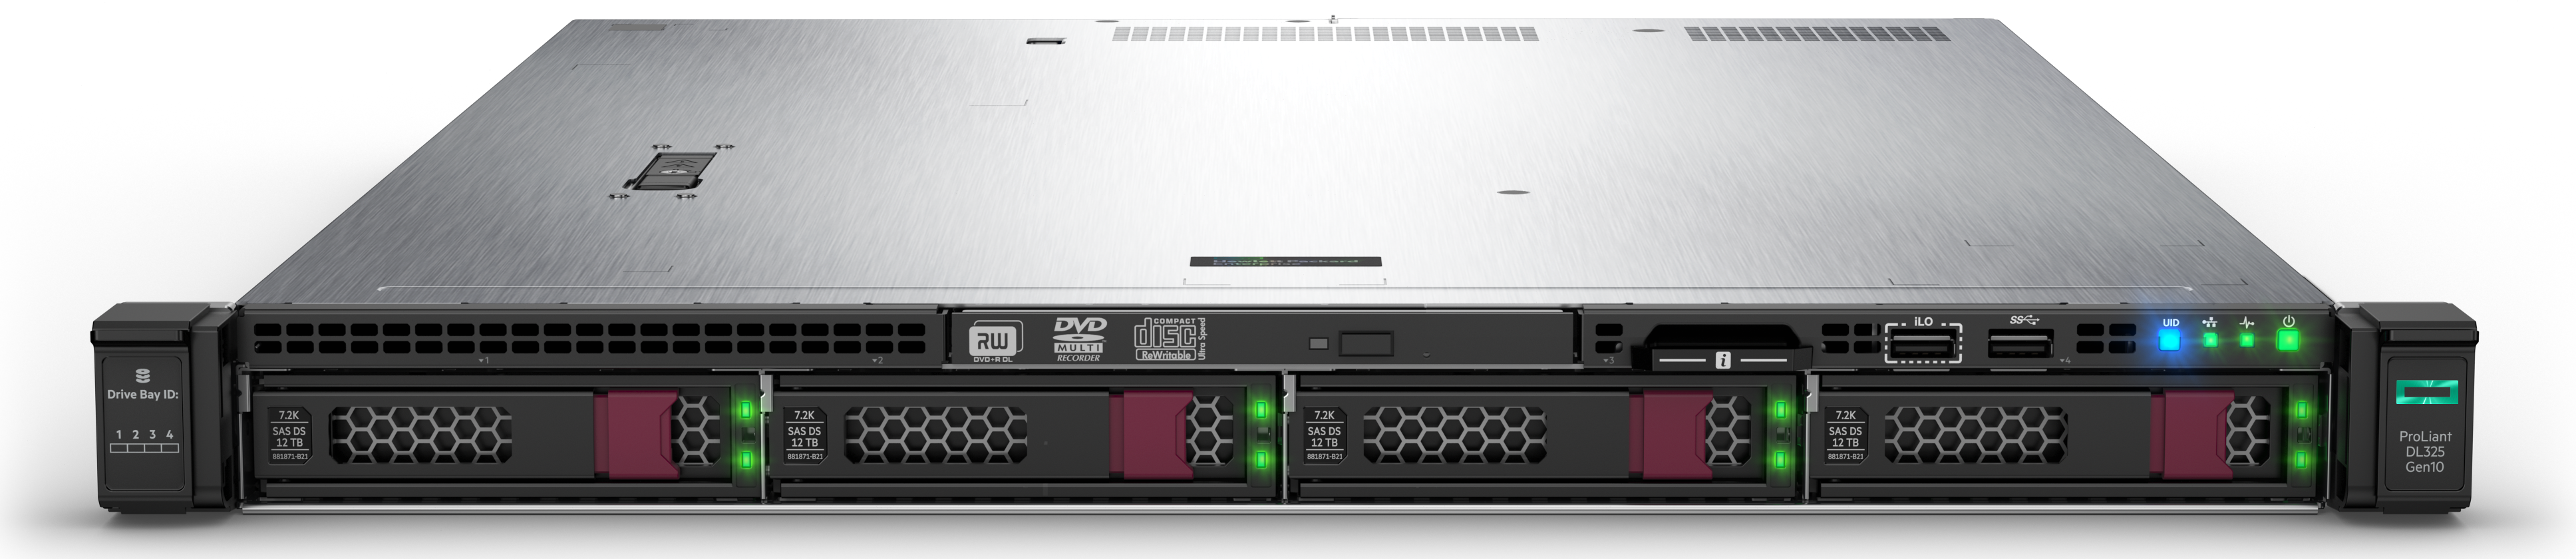 HPE ProLiant DL325 Gen10 4LFF